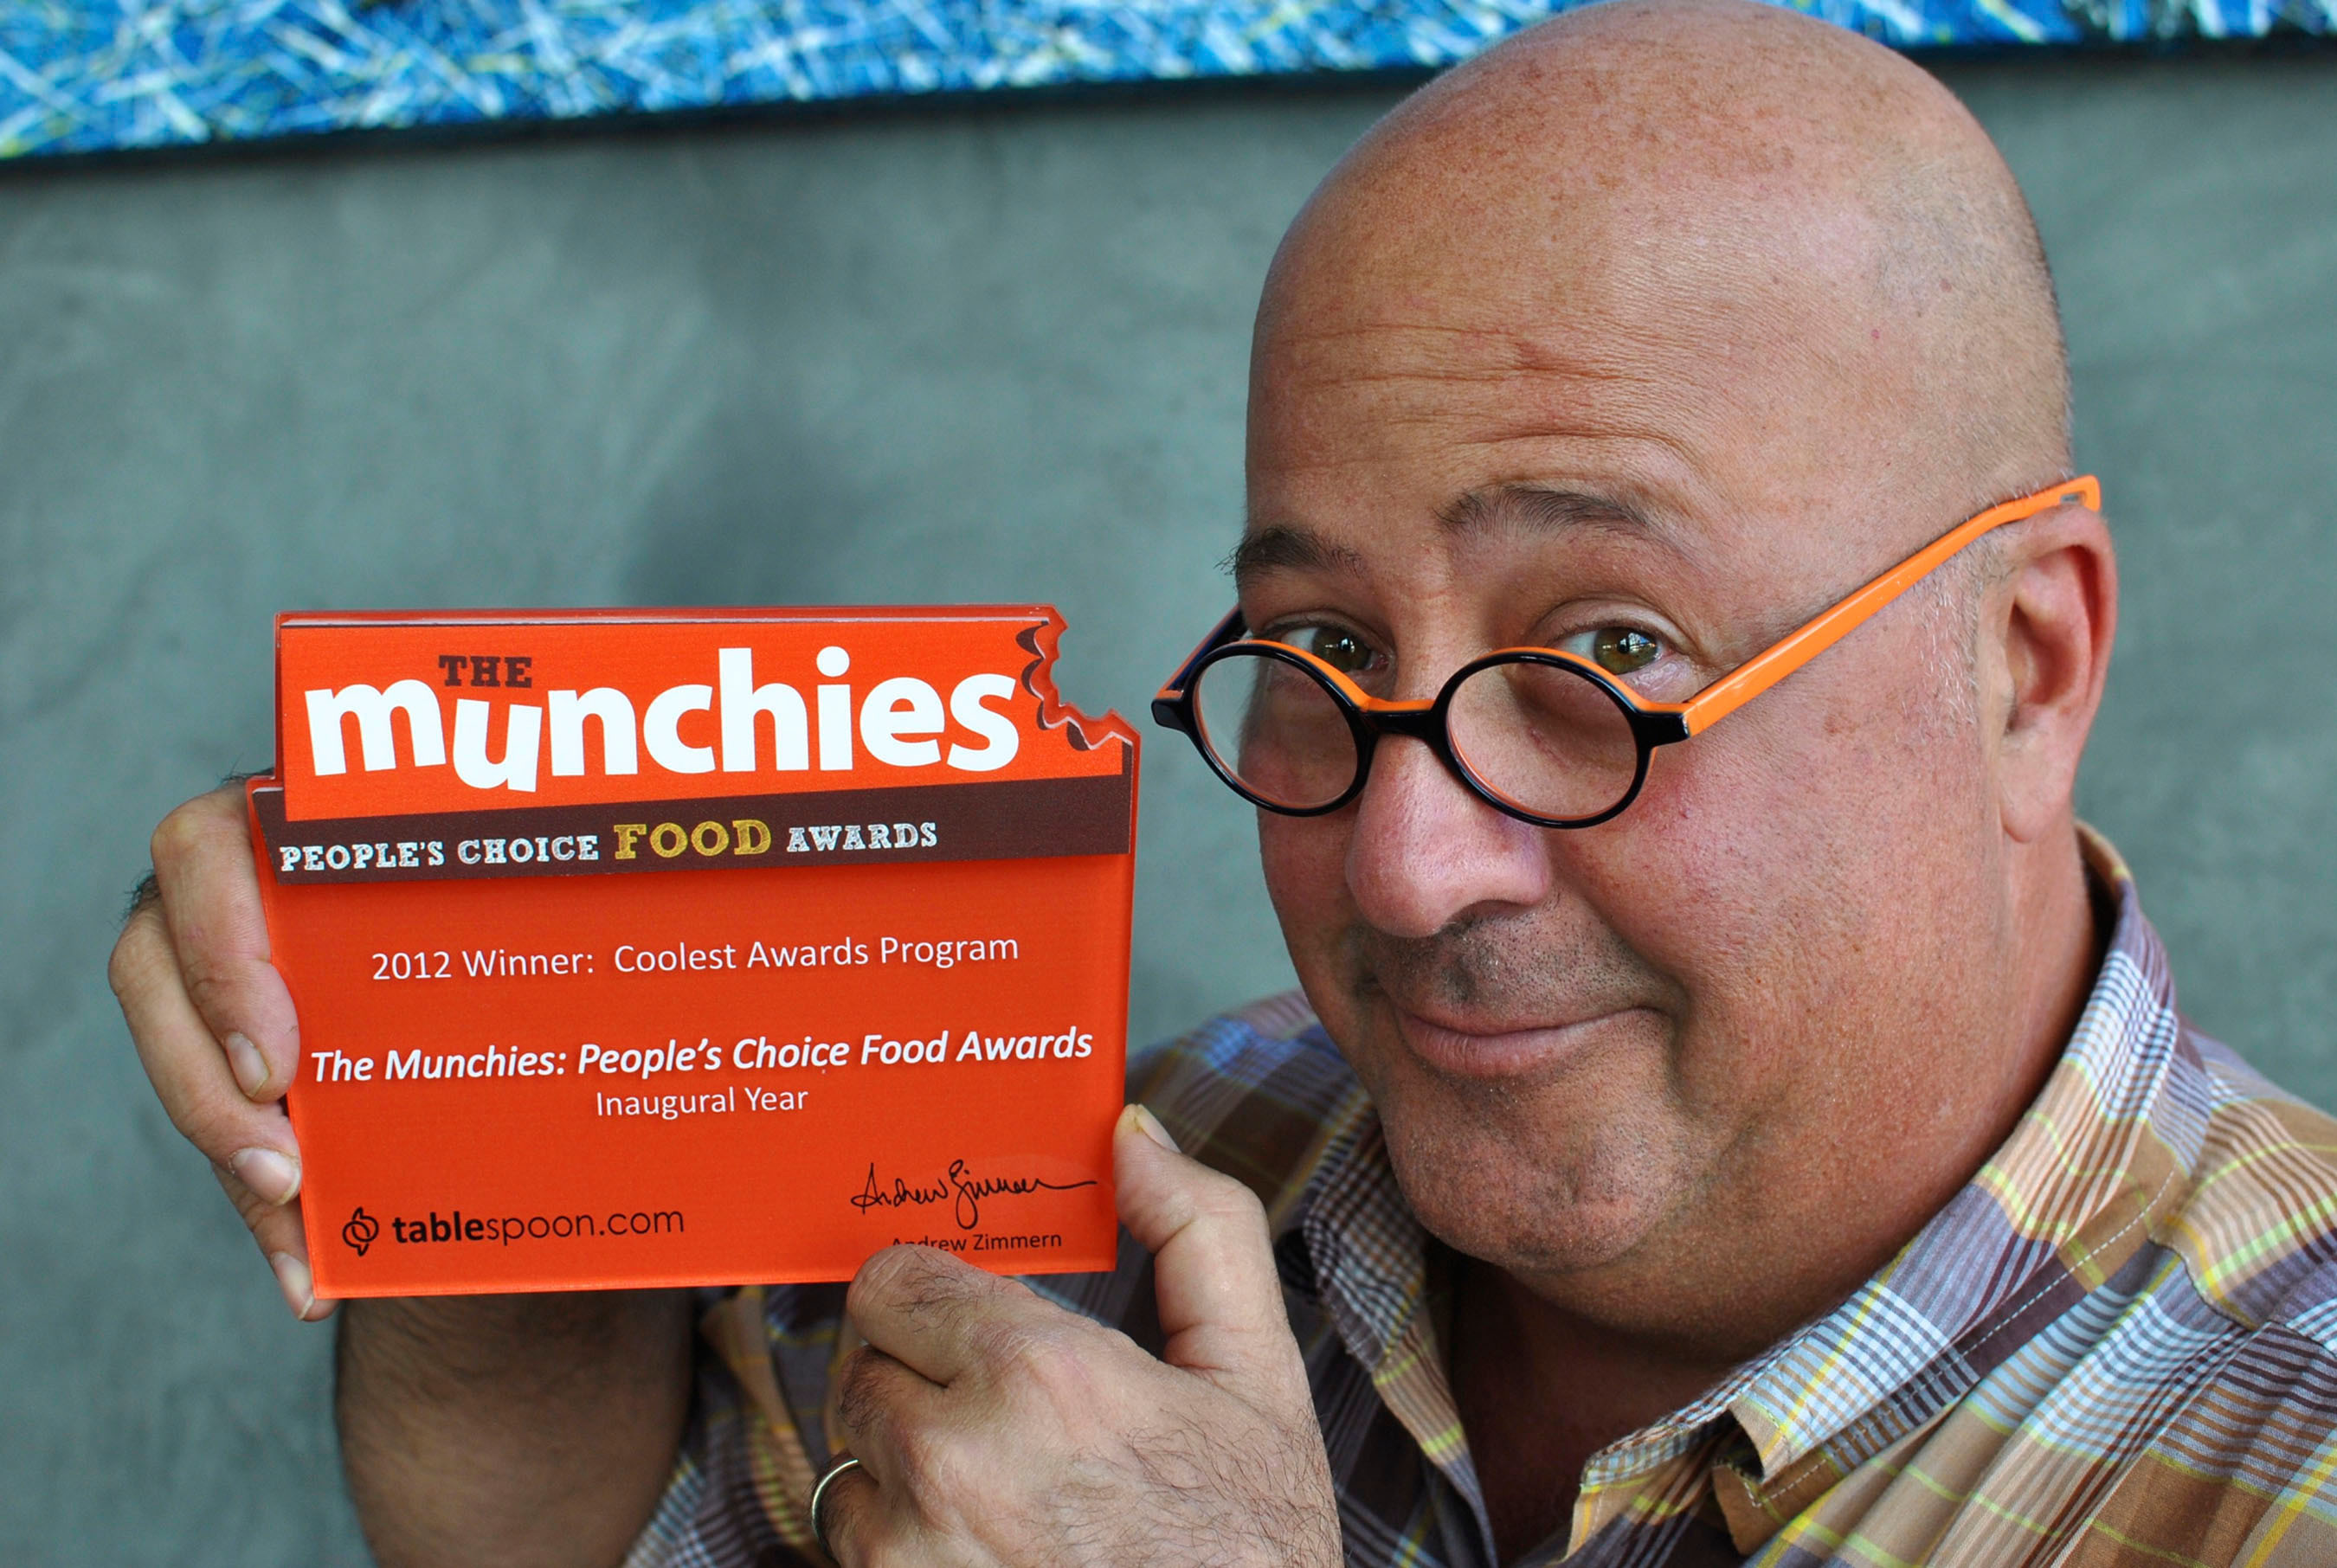 Andrew Zimmern heads up panel of food personalities to select nominees for second annual Munchies Awards: The People's Choice Food Awards. The people will select the best form 20 categories from best food truck to best food city, best taco to best coffee shop and best chef to best TV food show . Voting begins today through April 30th at Tablespoon.com/themunchies.  (PRNewsFoto/General Mills)